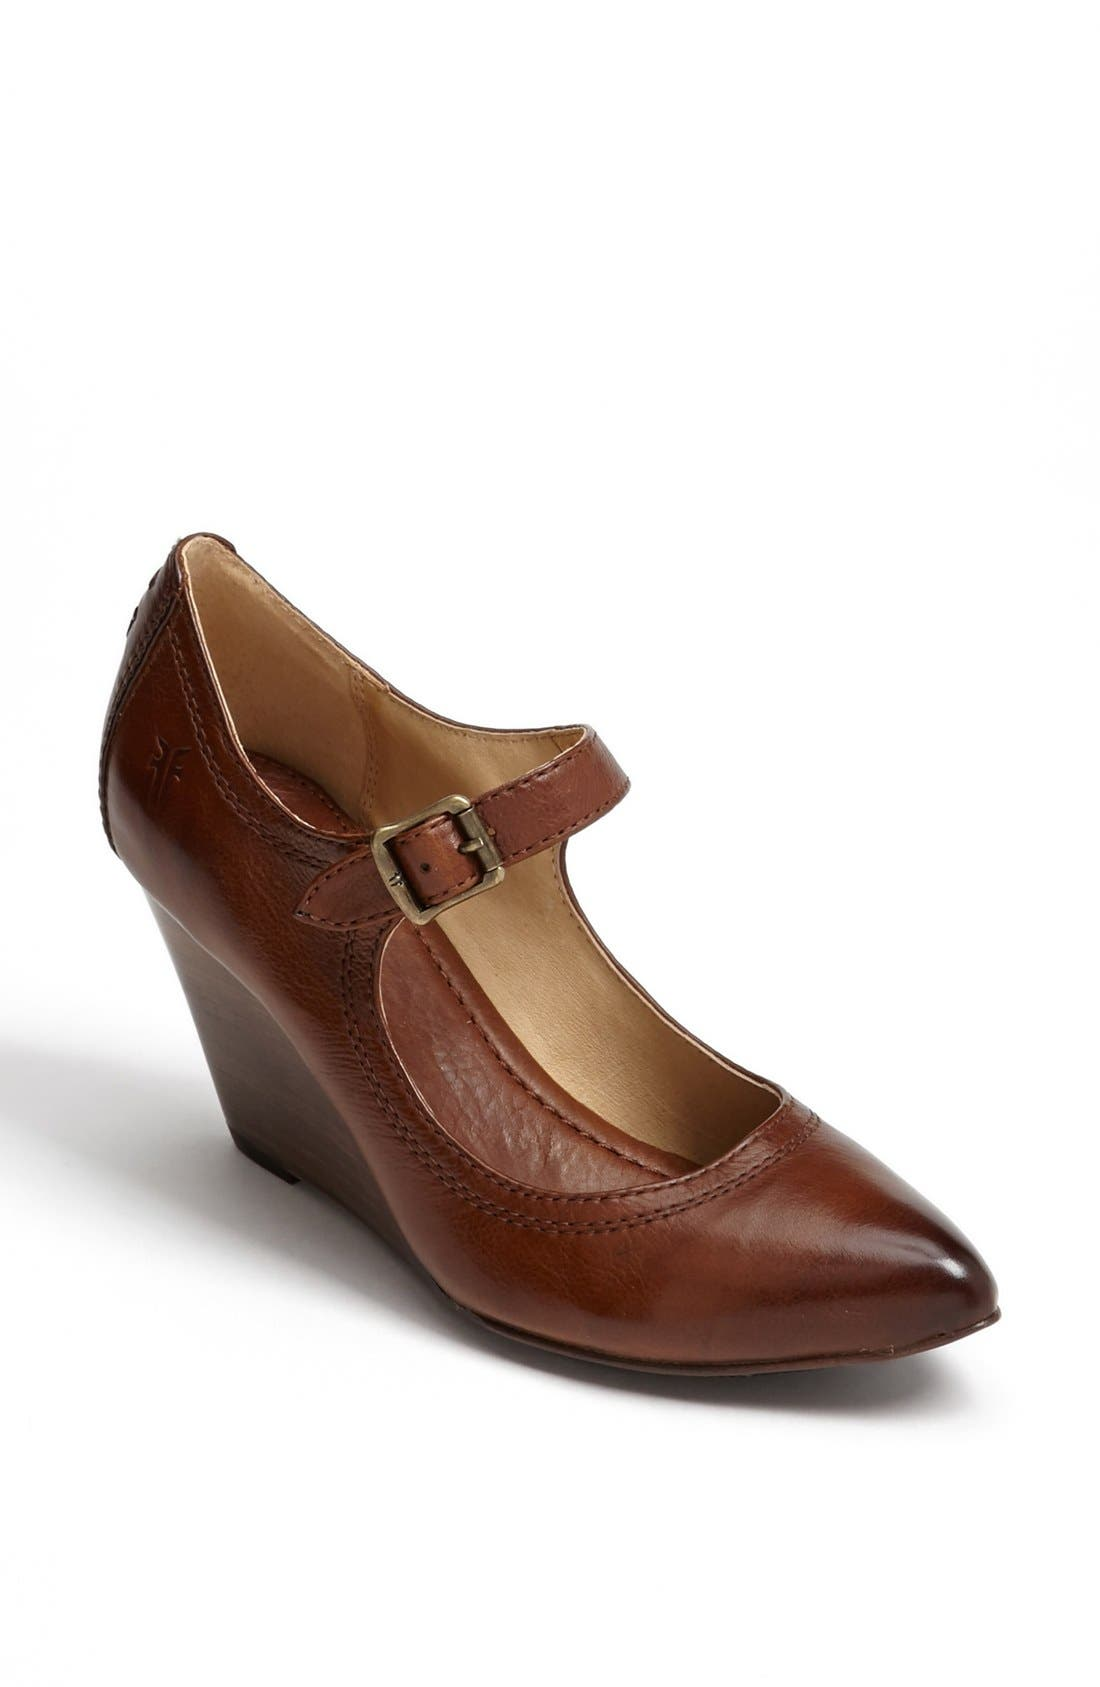 Alternate Image 1 Selected - Frye 'Regina' Wedge Pump